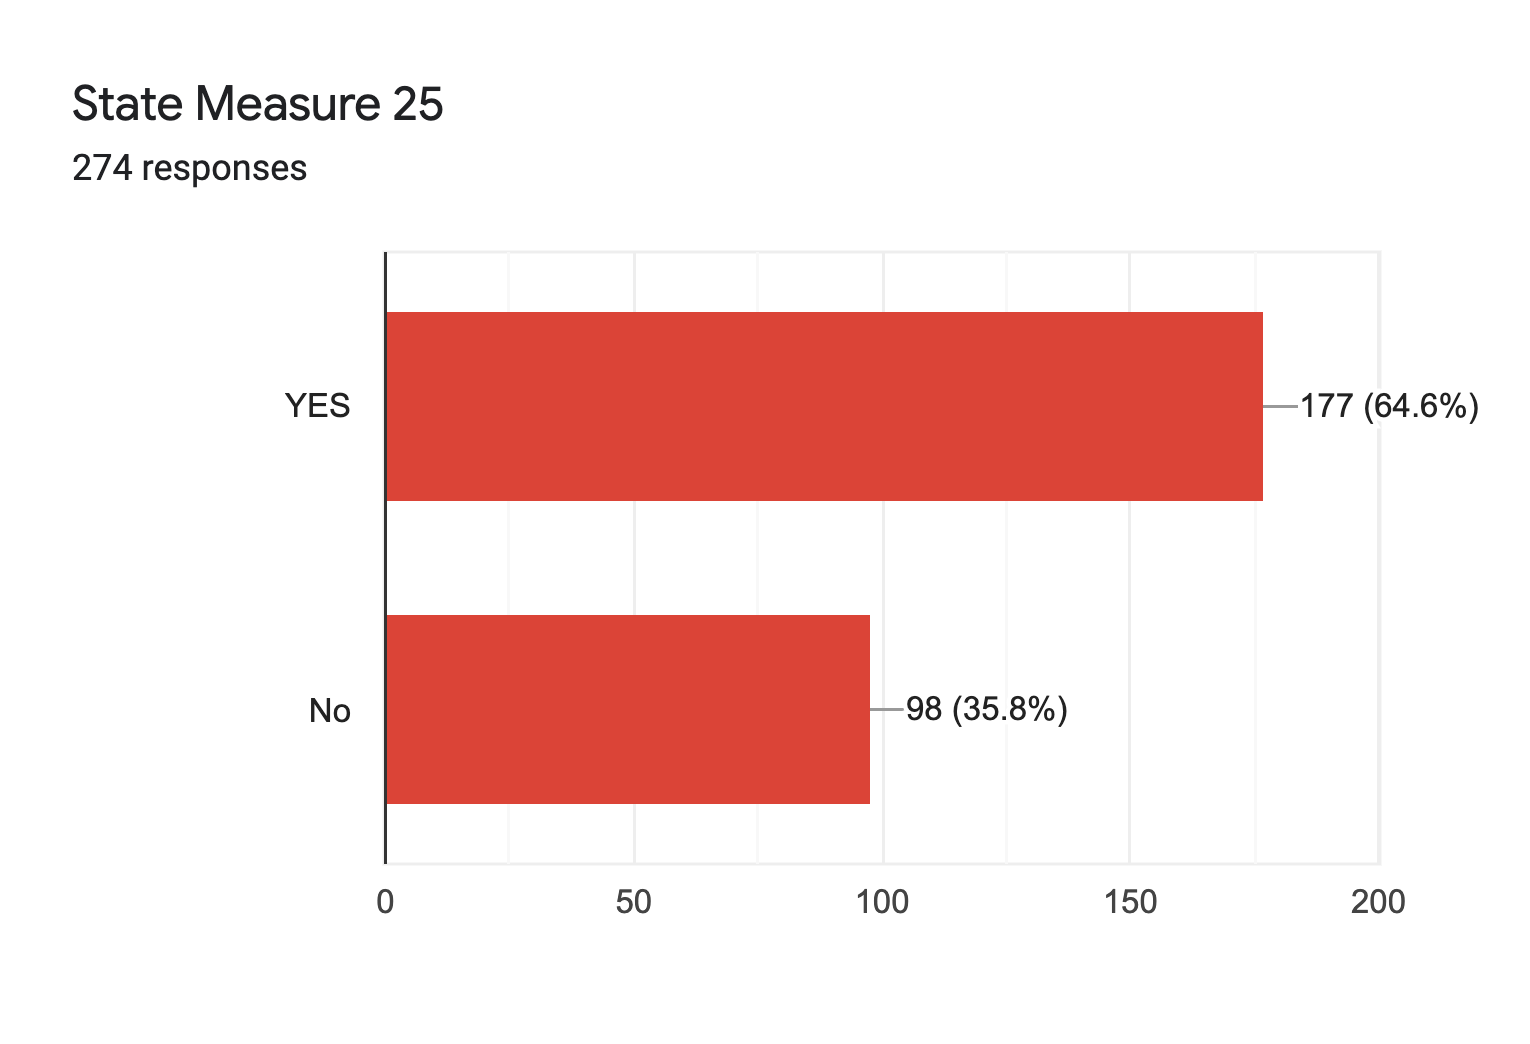 Forms response chart. Question title: State Measure 25. Number of responses: 274 responses.